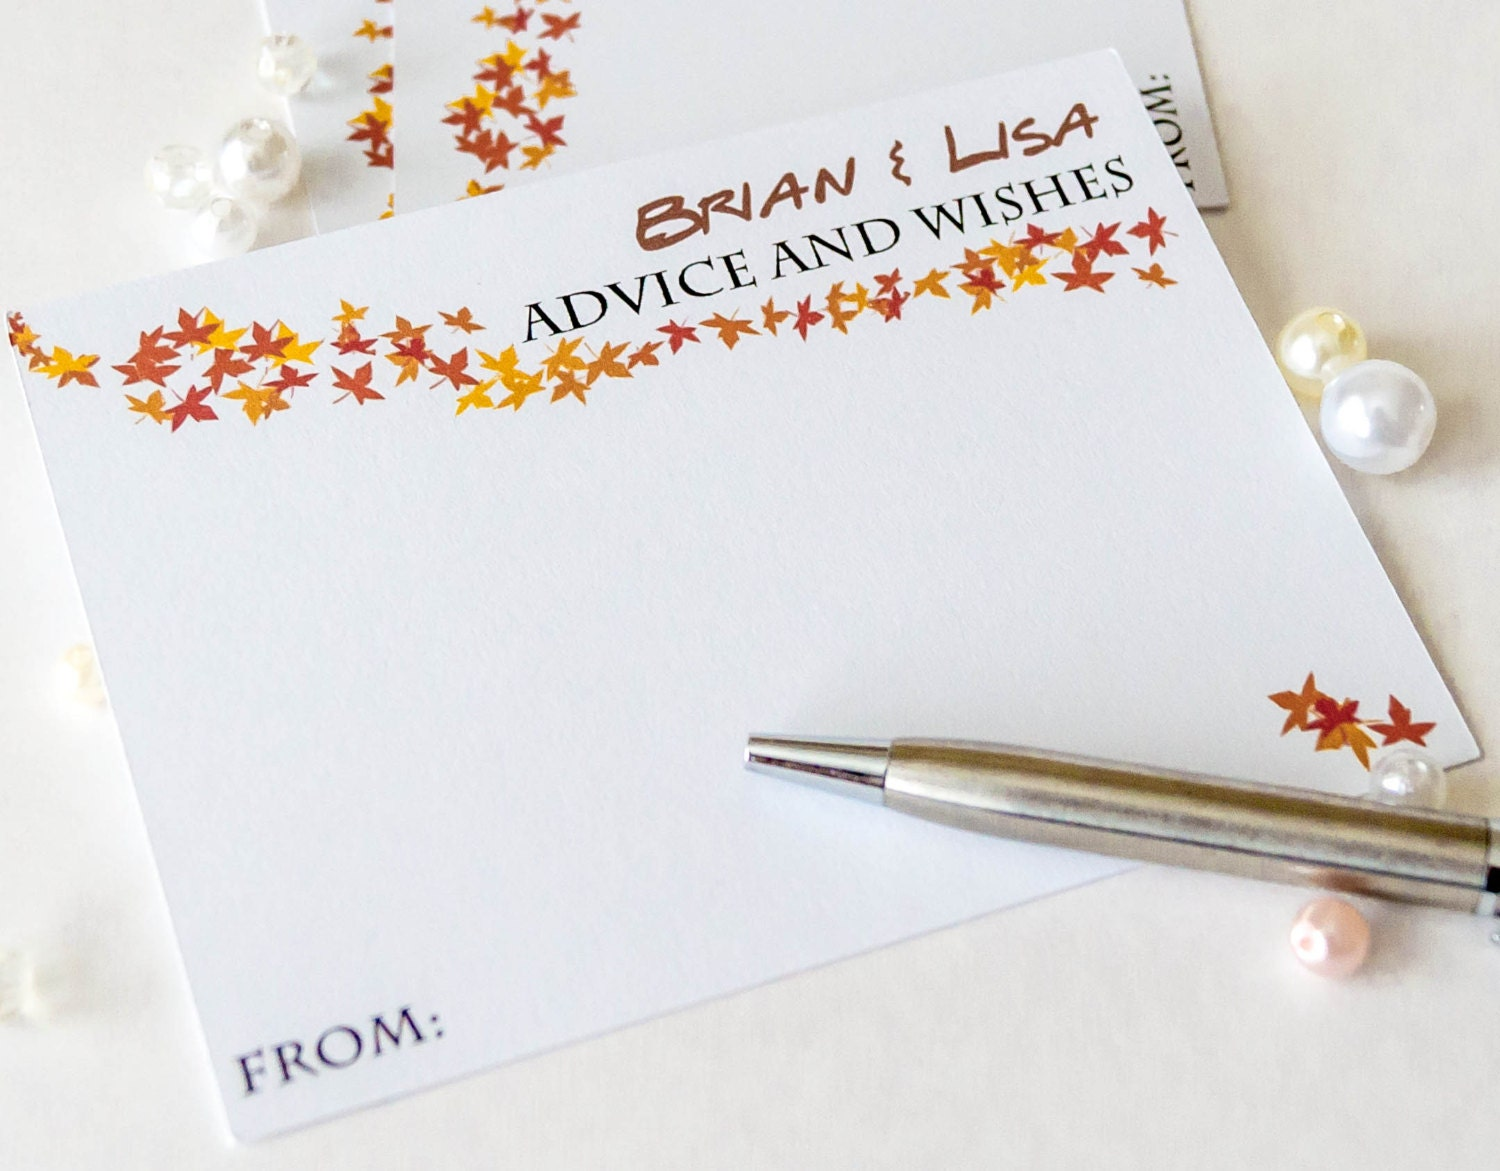 Advice And Wishes Cards Wedding Comment Cards Fall Wedding